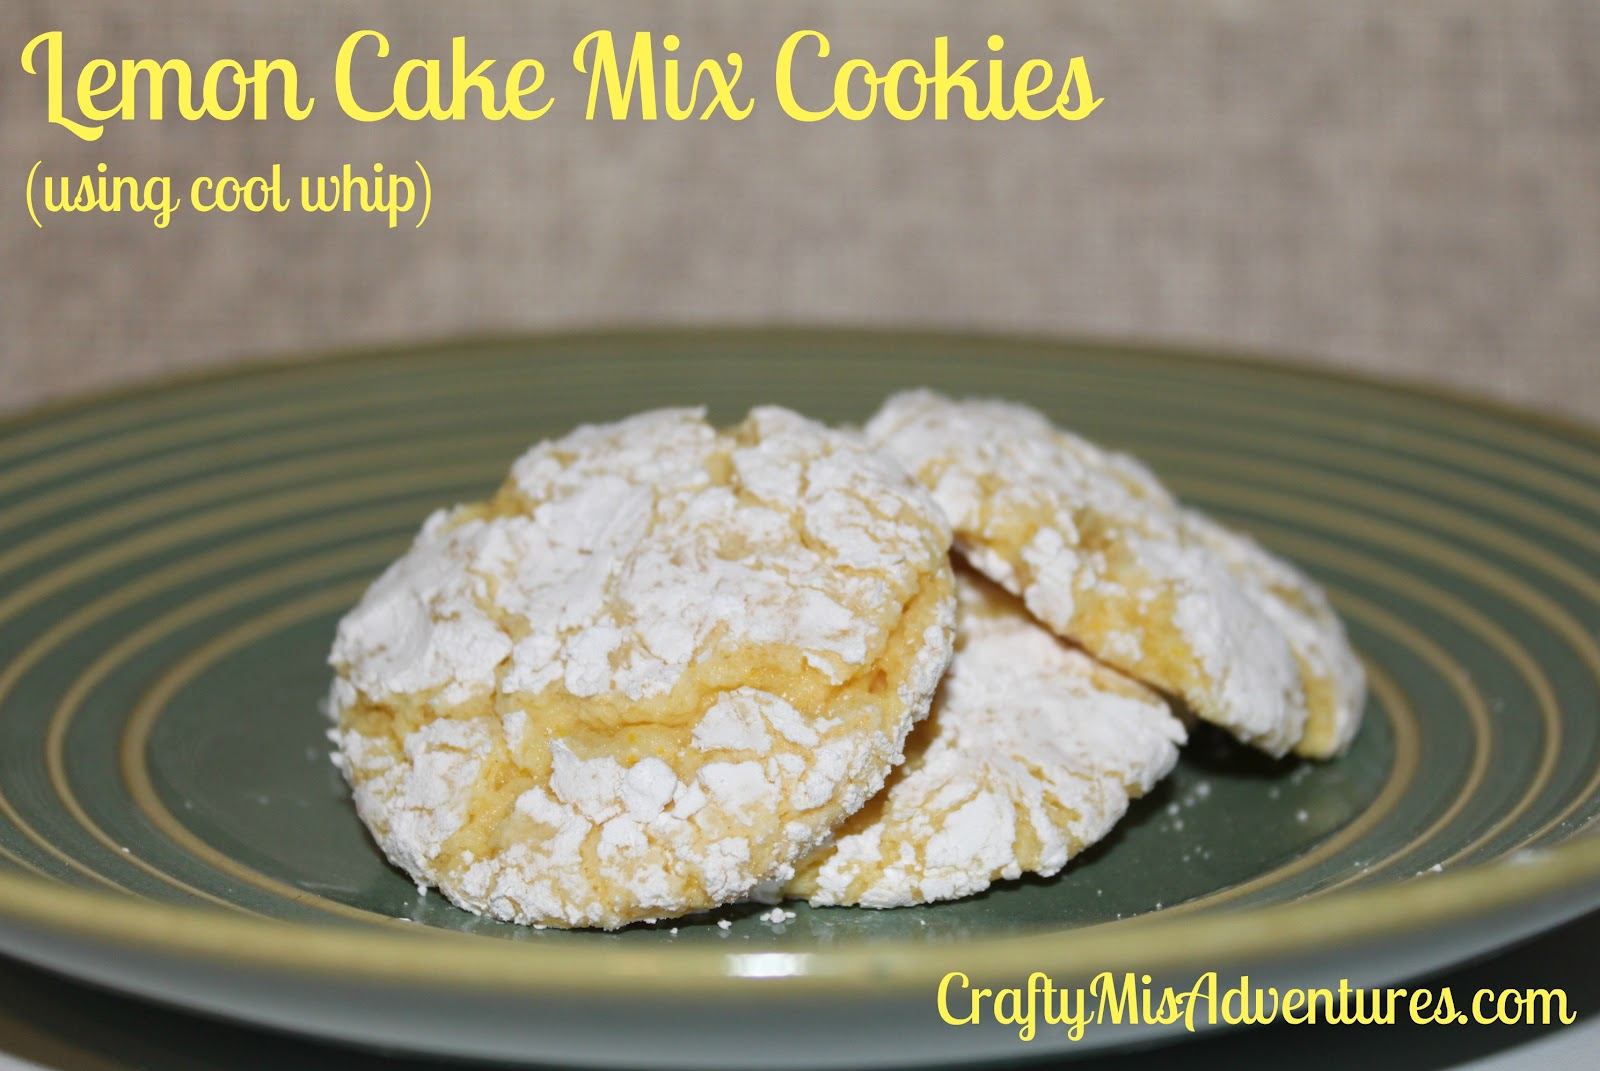 ... on lemon cake mix cookies lemon cake mix cookies using cool whip